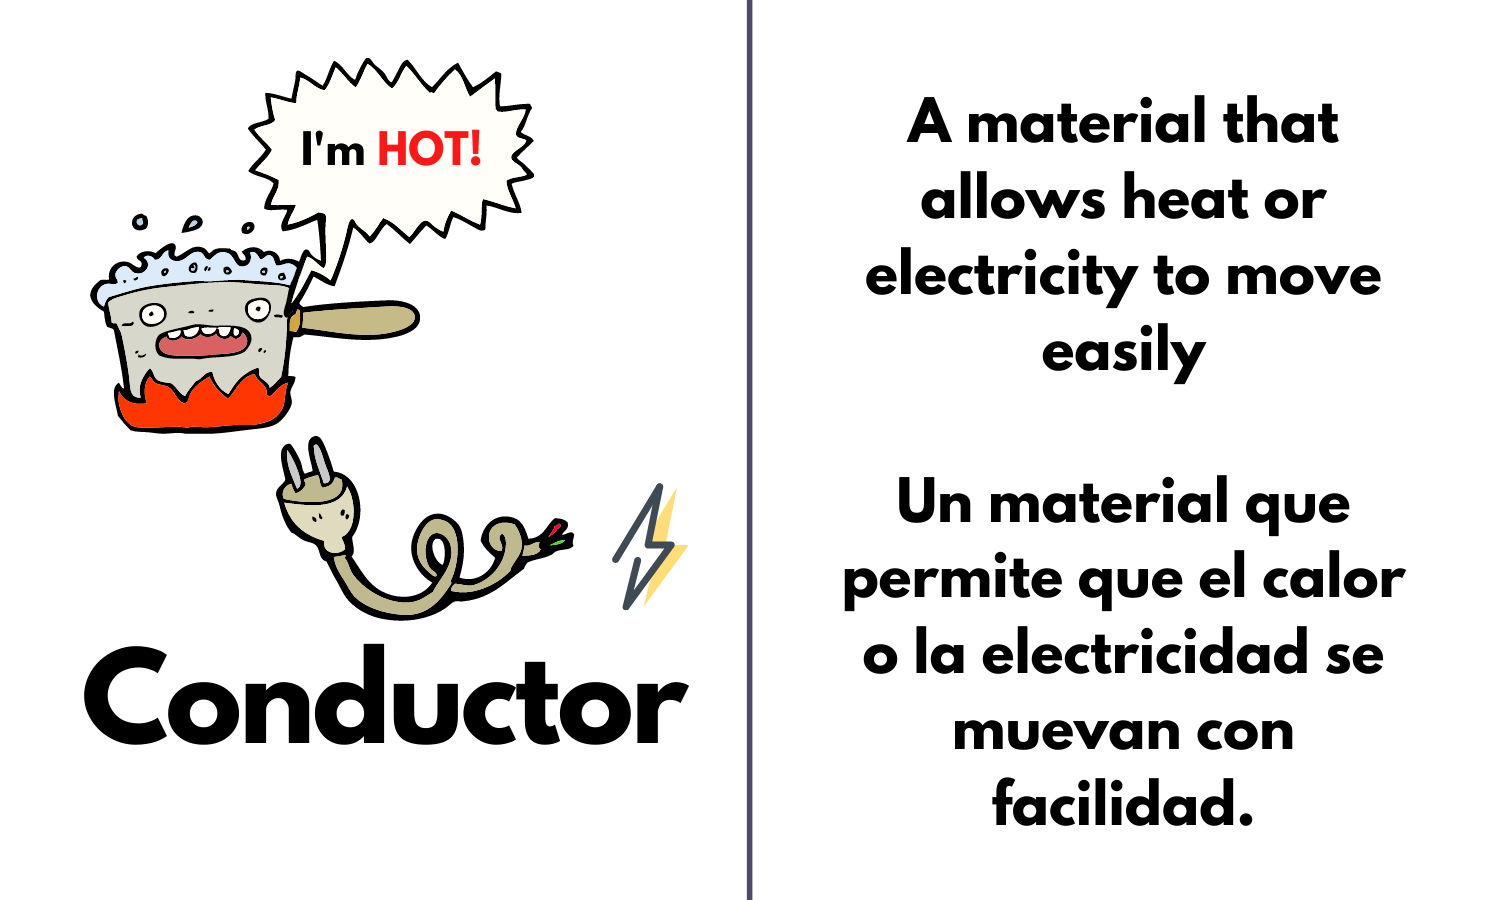 Conductor Matching Card: A conductor is a material that allows heat or electricity to move easily through it